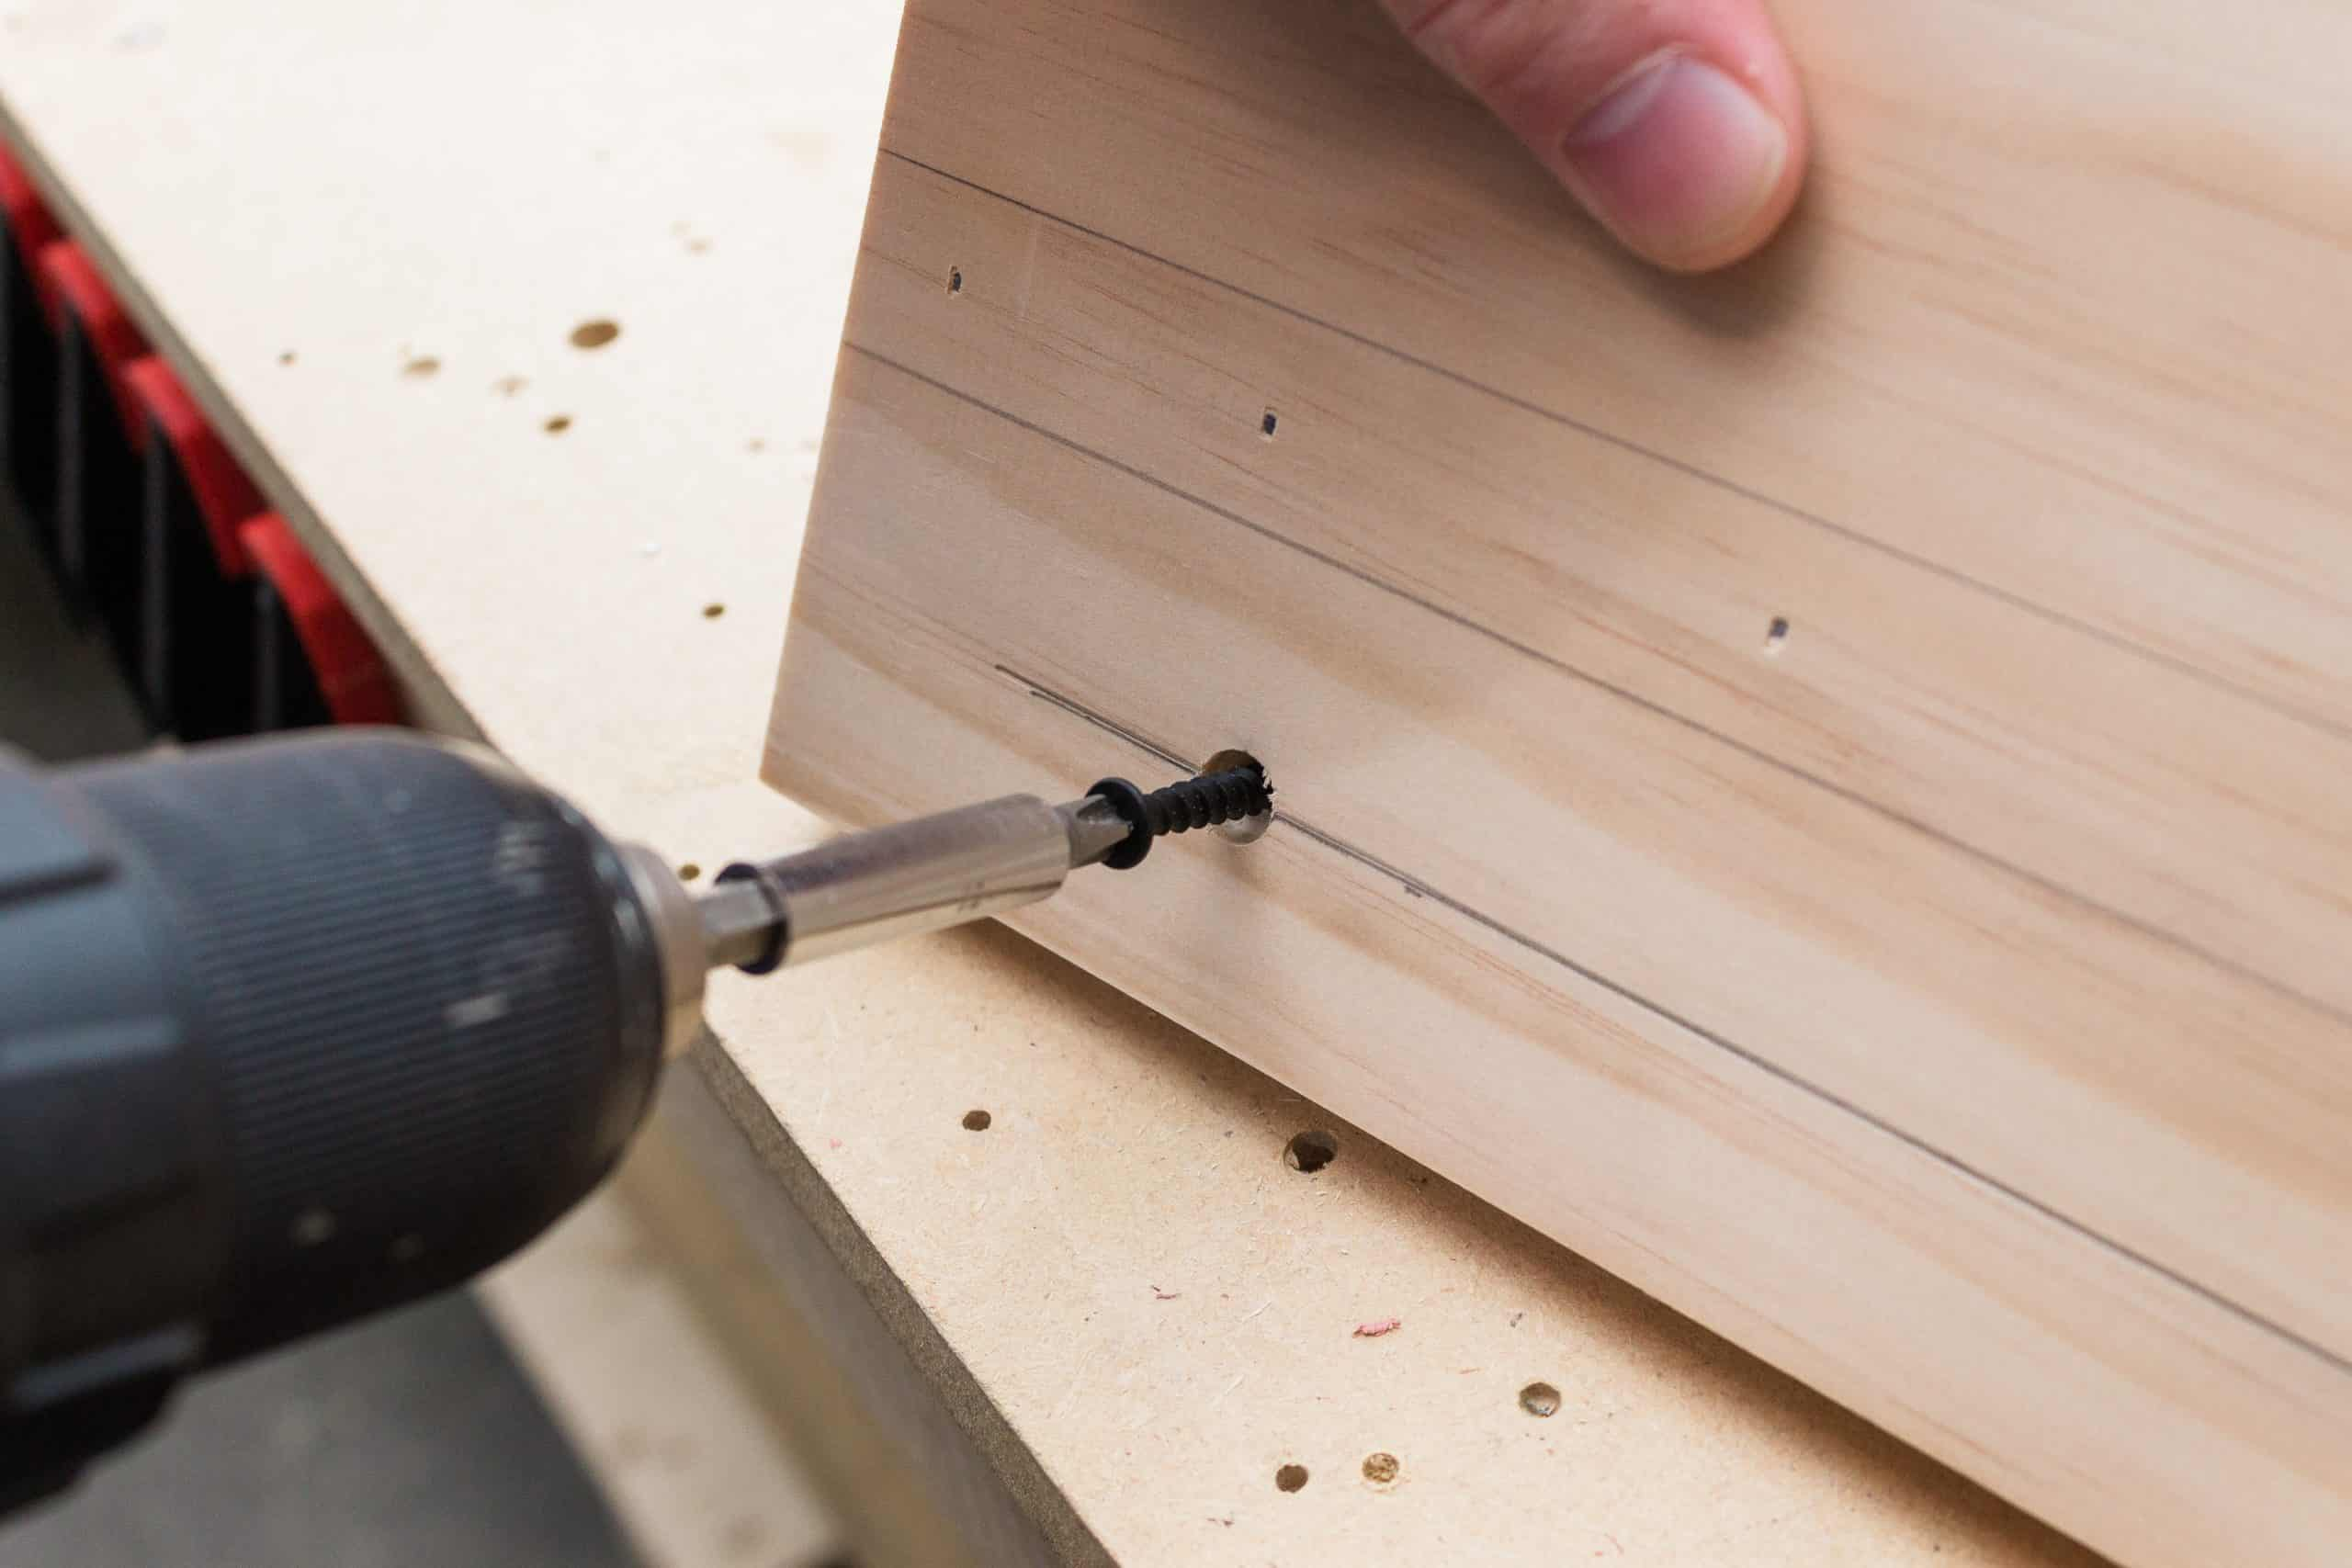 Use a countersink bit to drill the holes for the dowels when assembling the peg rail shelf.